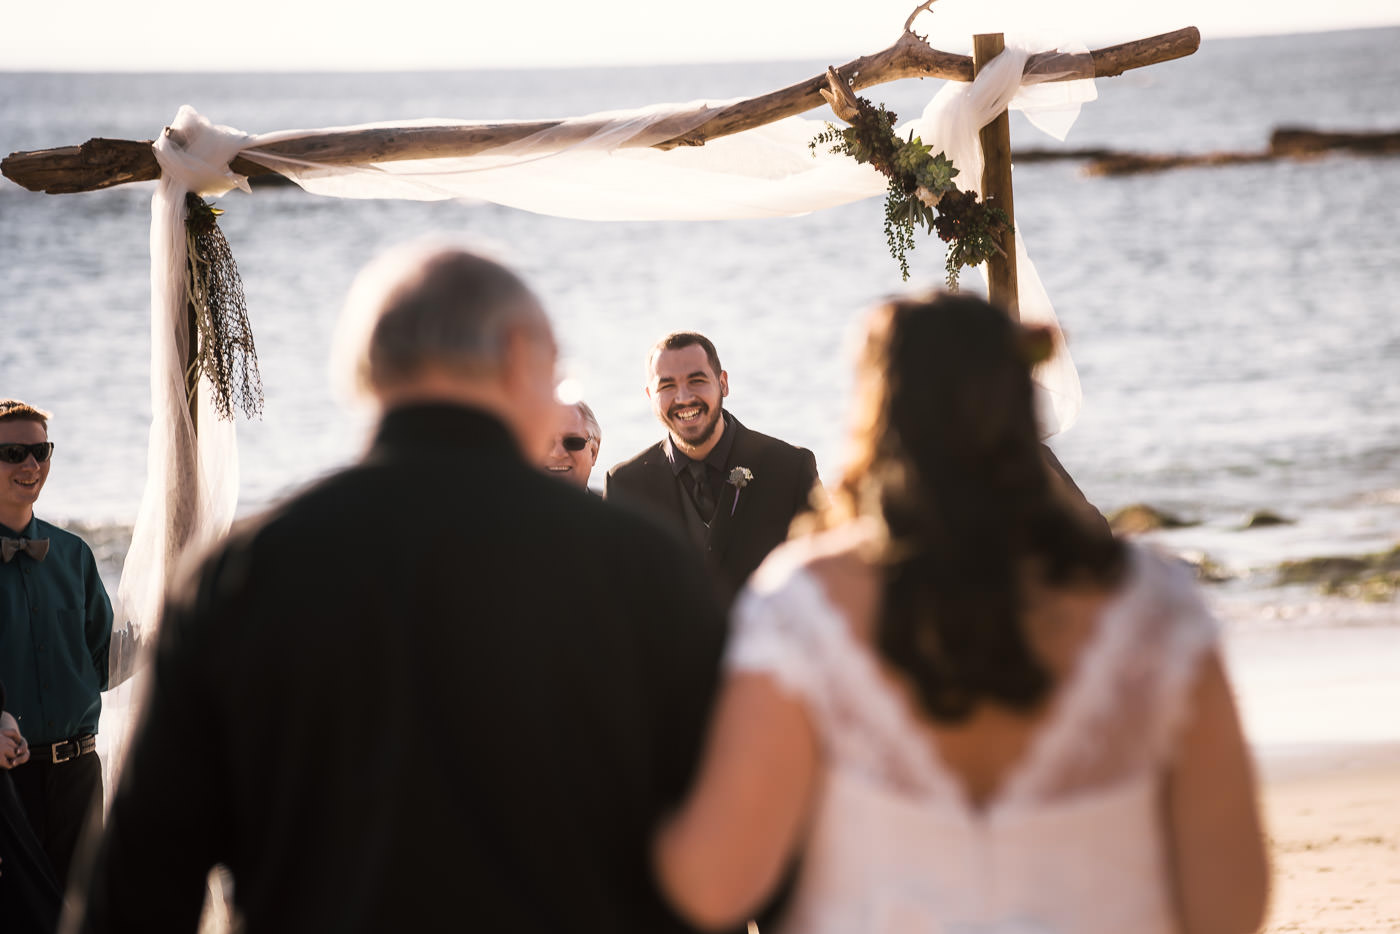 Groom smiles with joy as he sees his wife for the first time at their intimate beach elopement